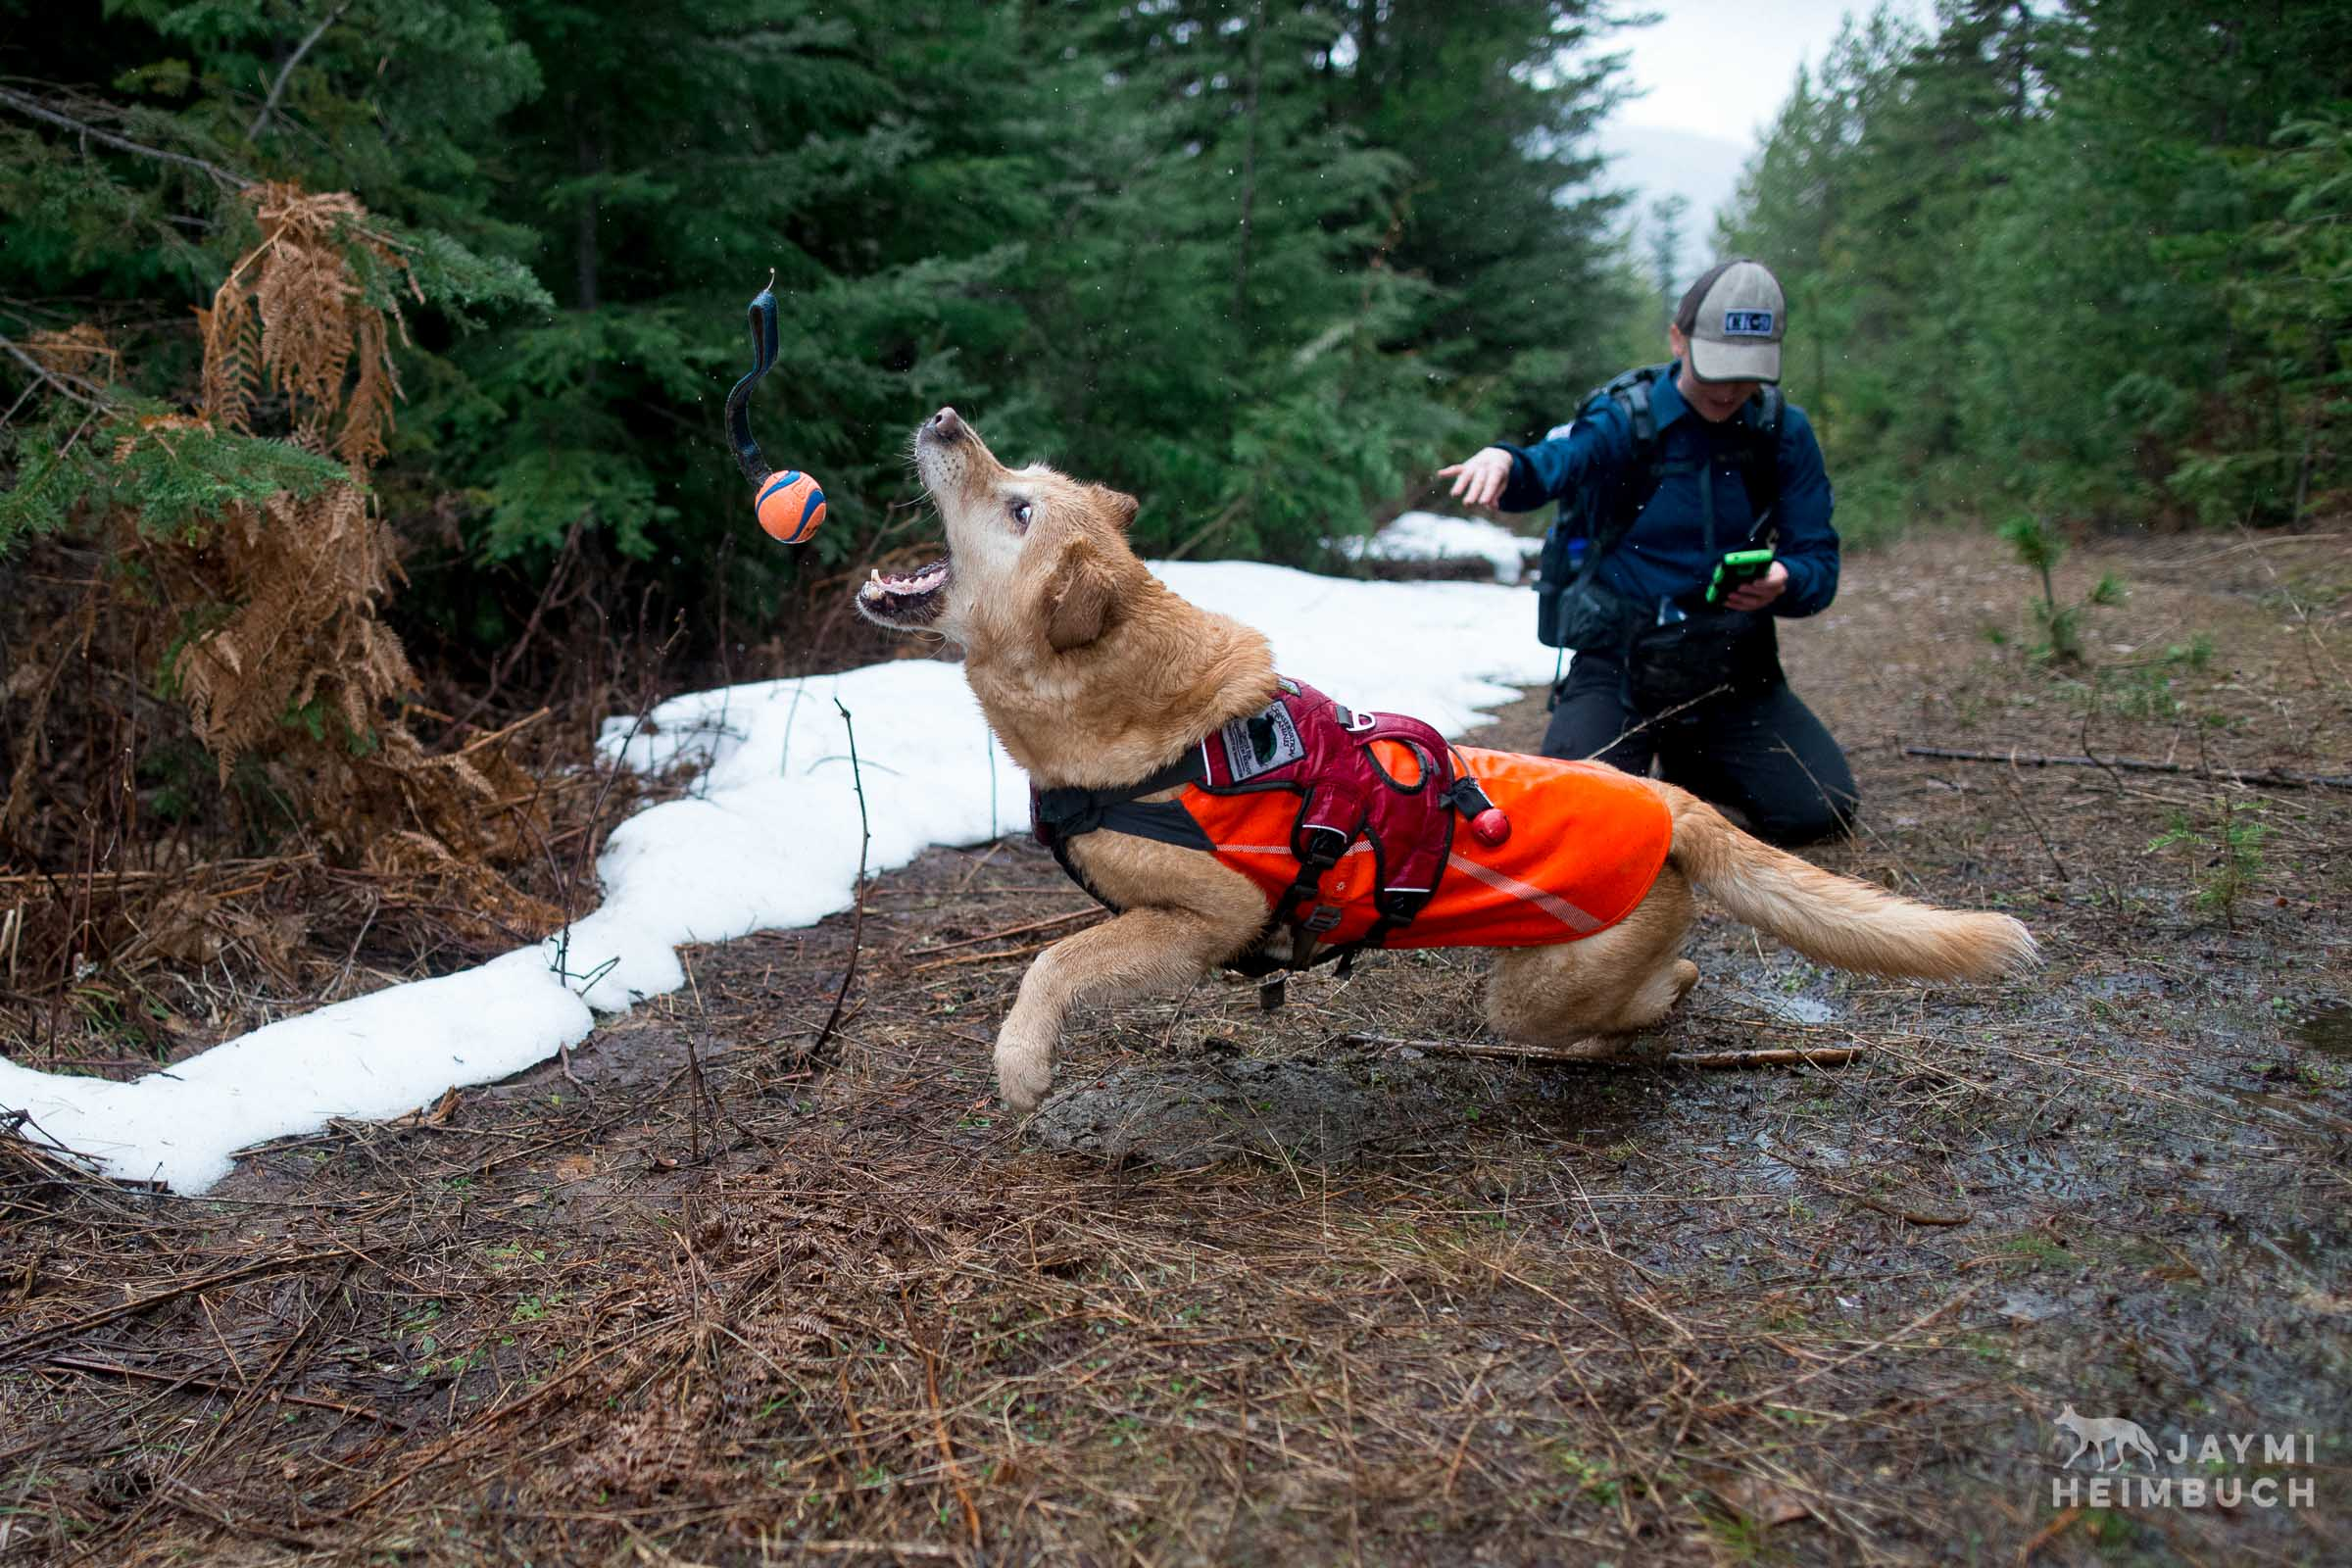 scent detection dog and researcher